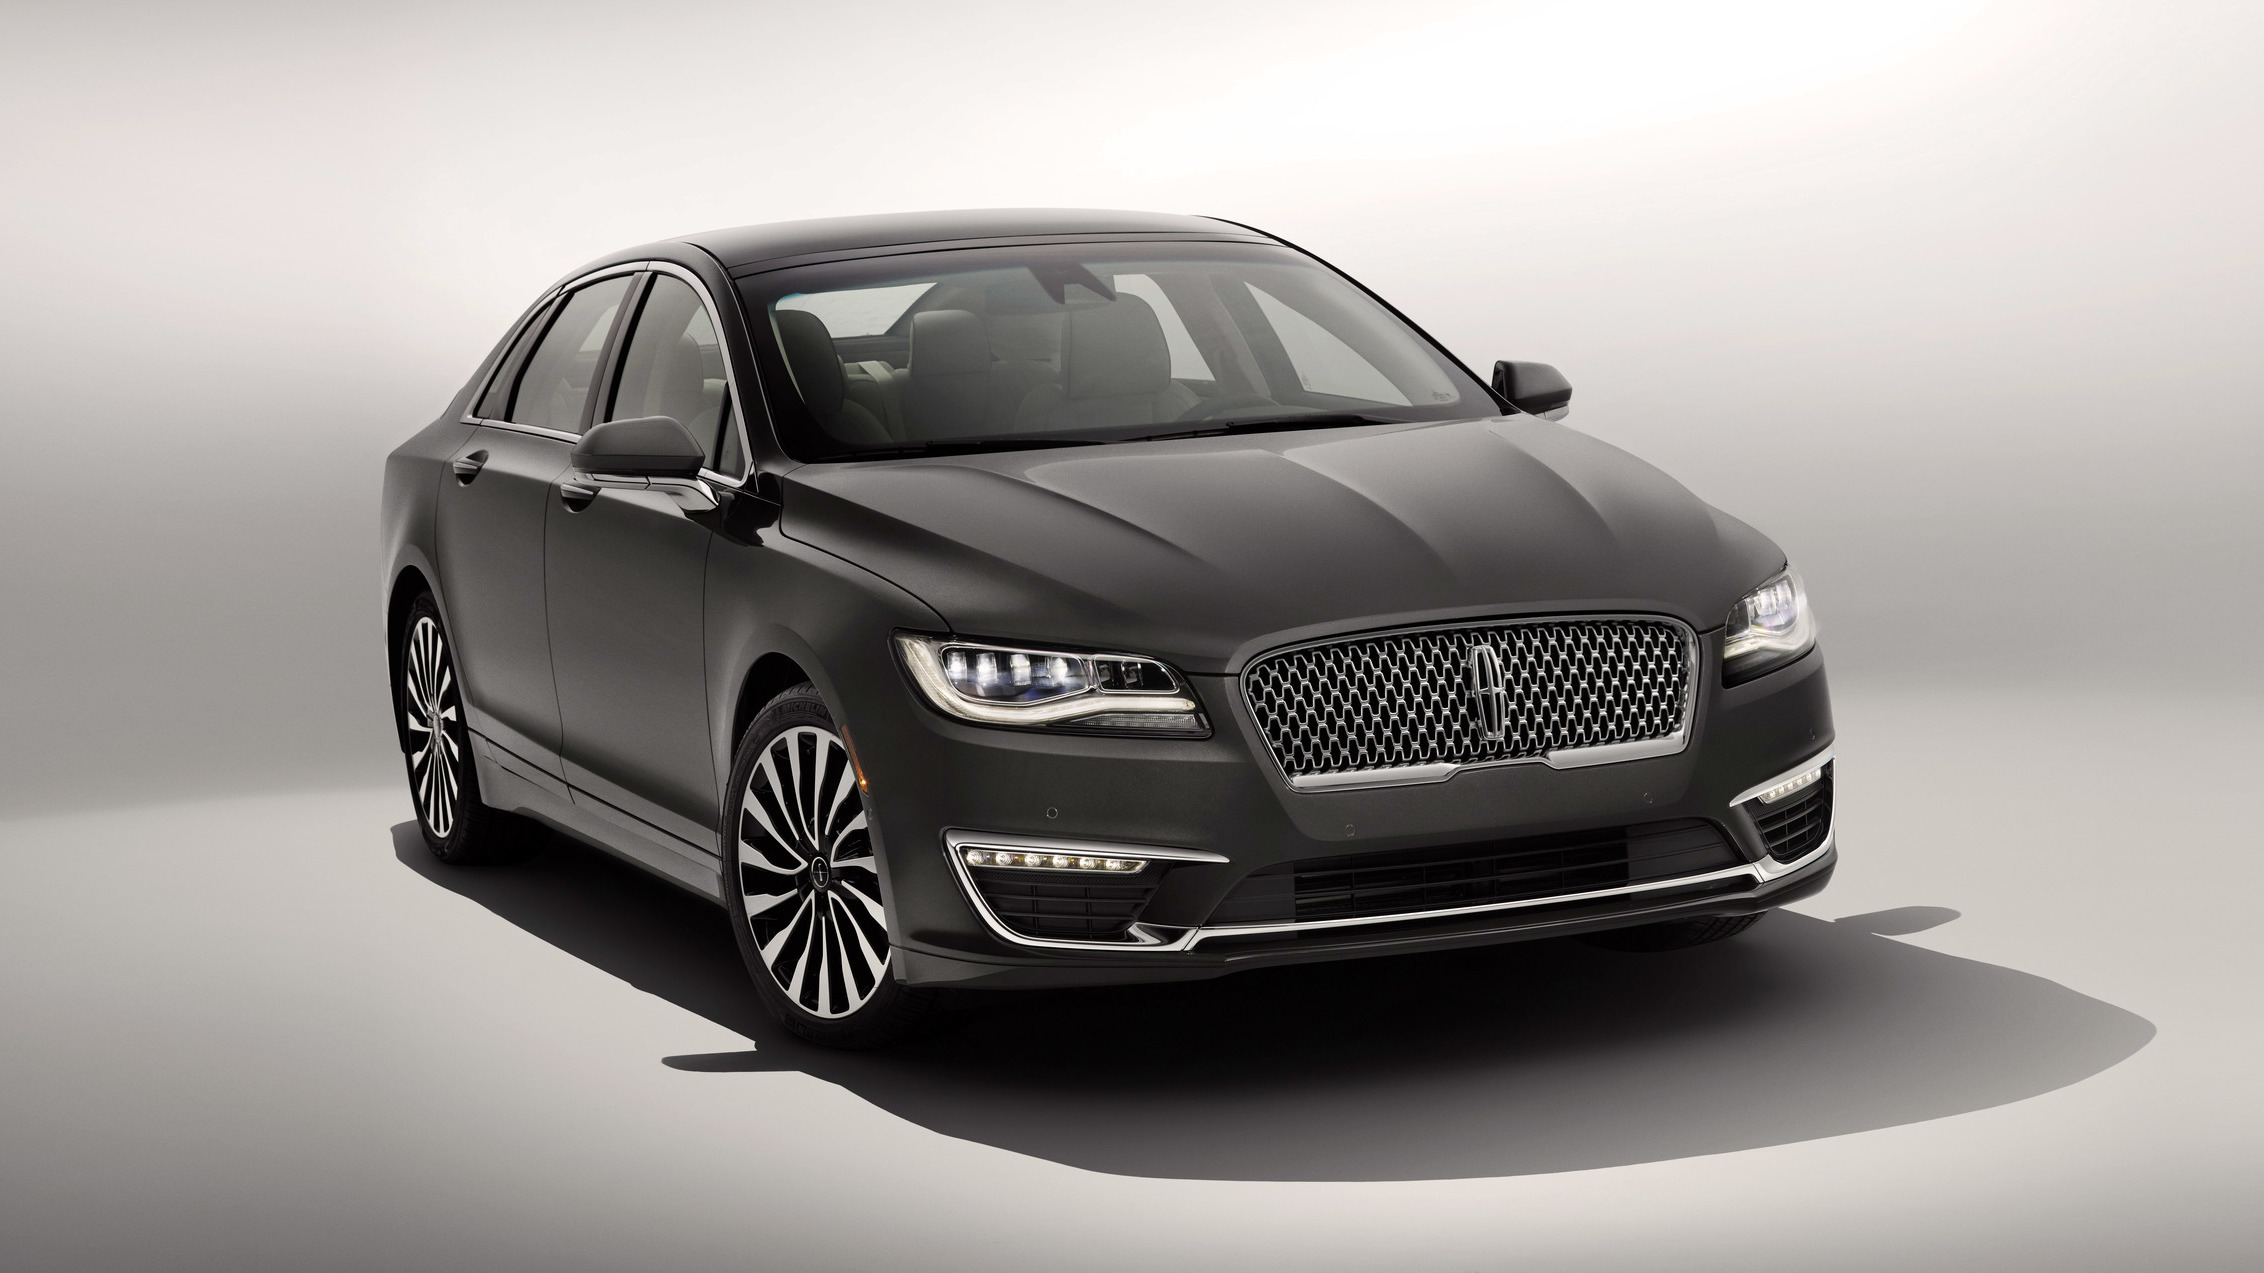 2017 lincoln mkz revealed all new 400hp 400tq v6 tt w. Black Bedroom Furniture Sets. Home Design Ideas